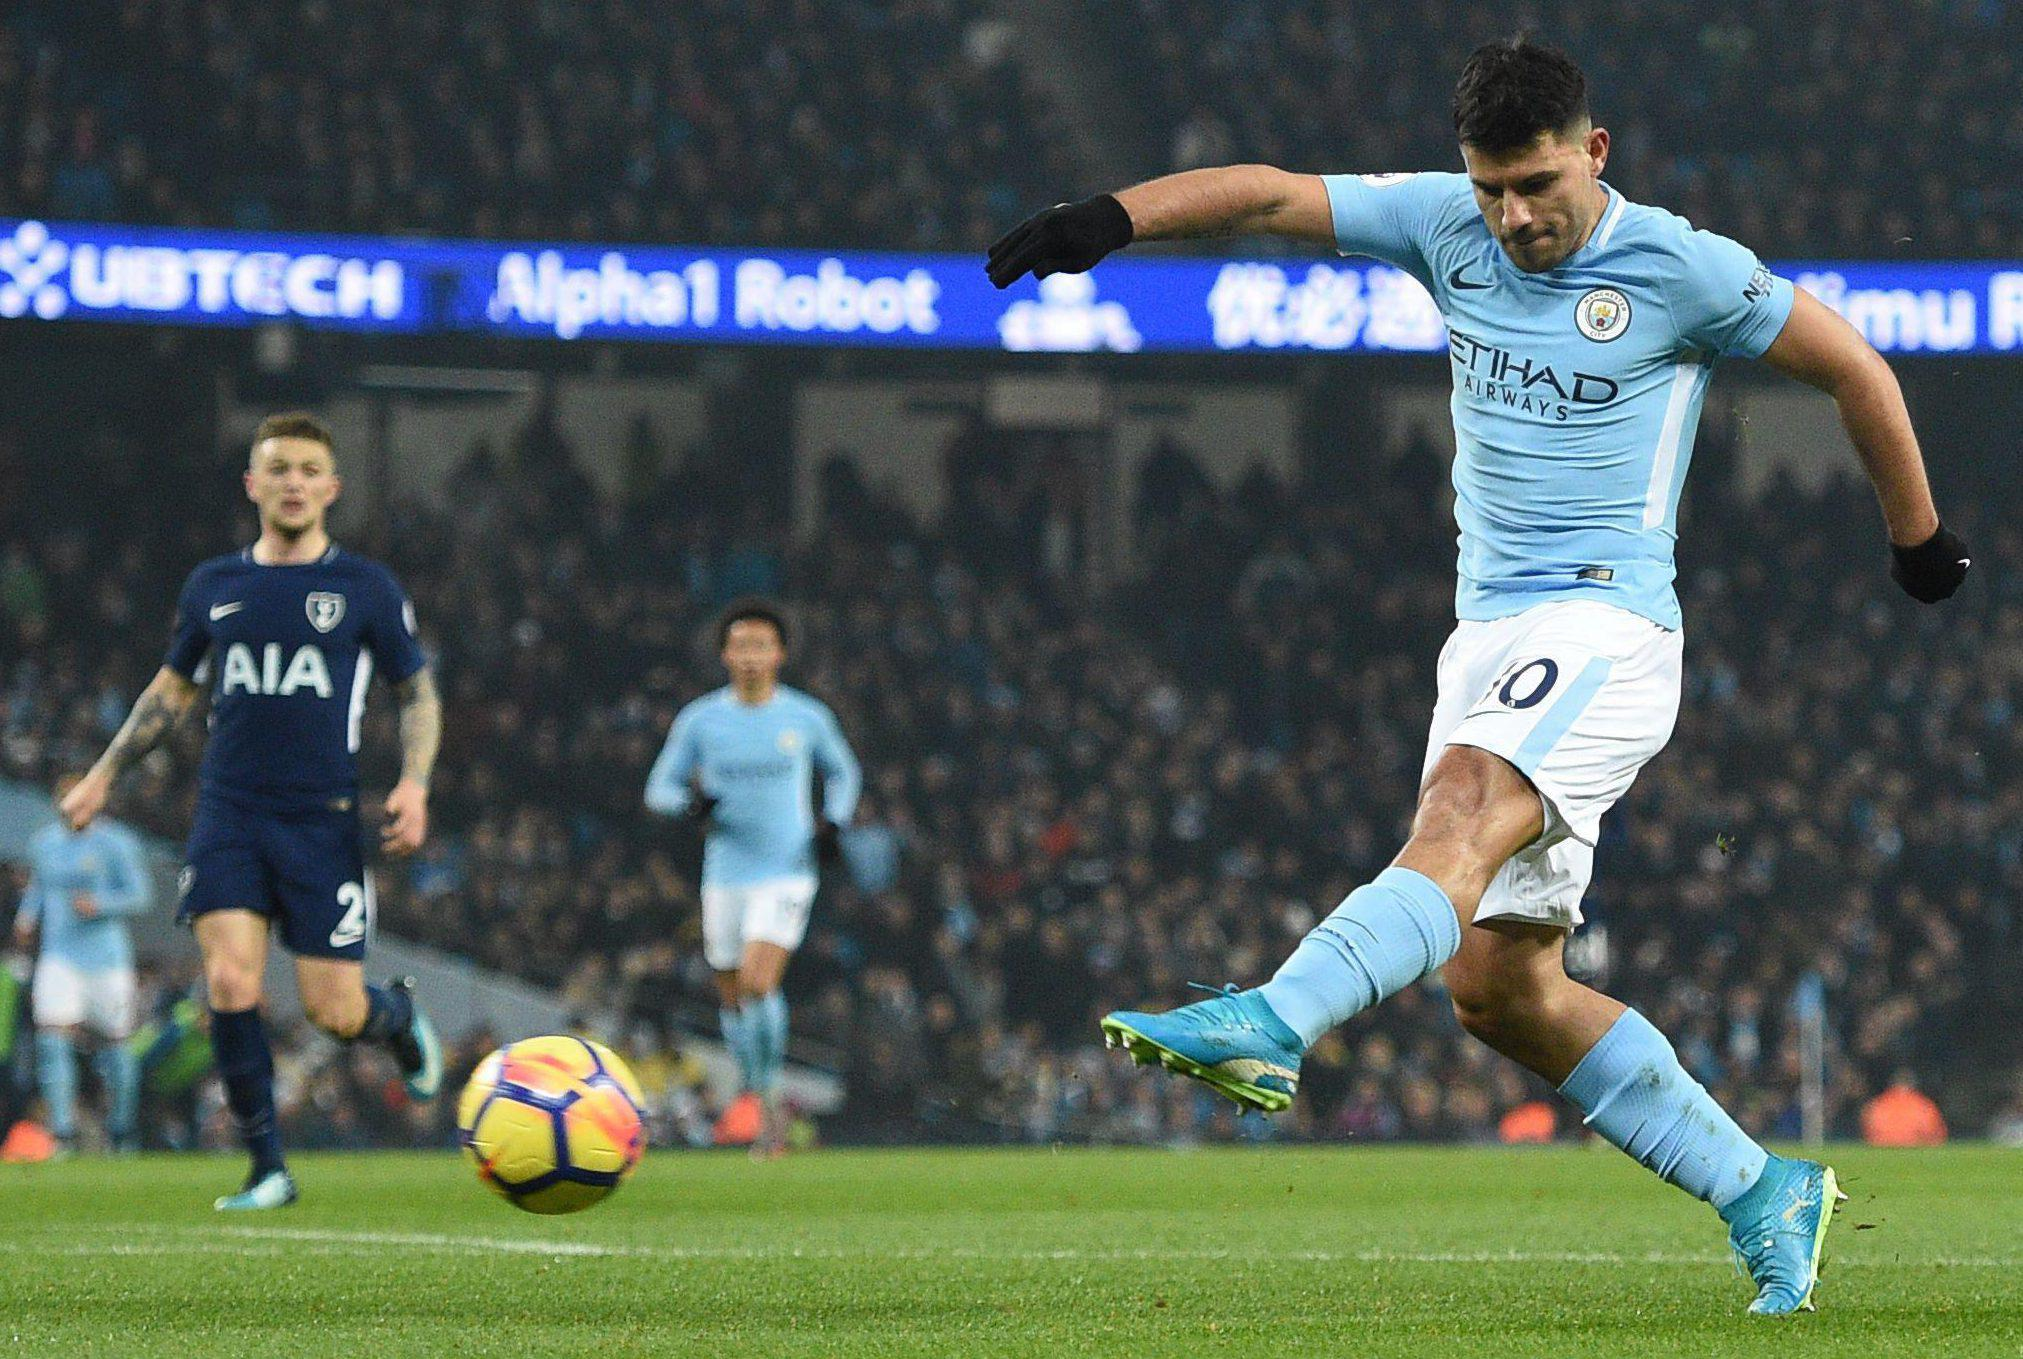 The future of Man City legend Sergio Aguero is uncertain as the Etihad revolution continues